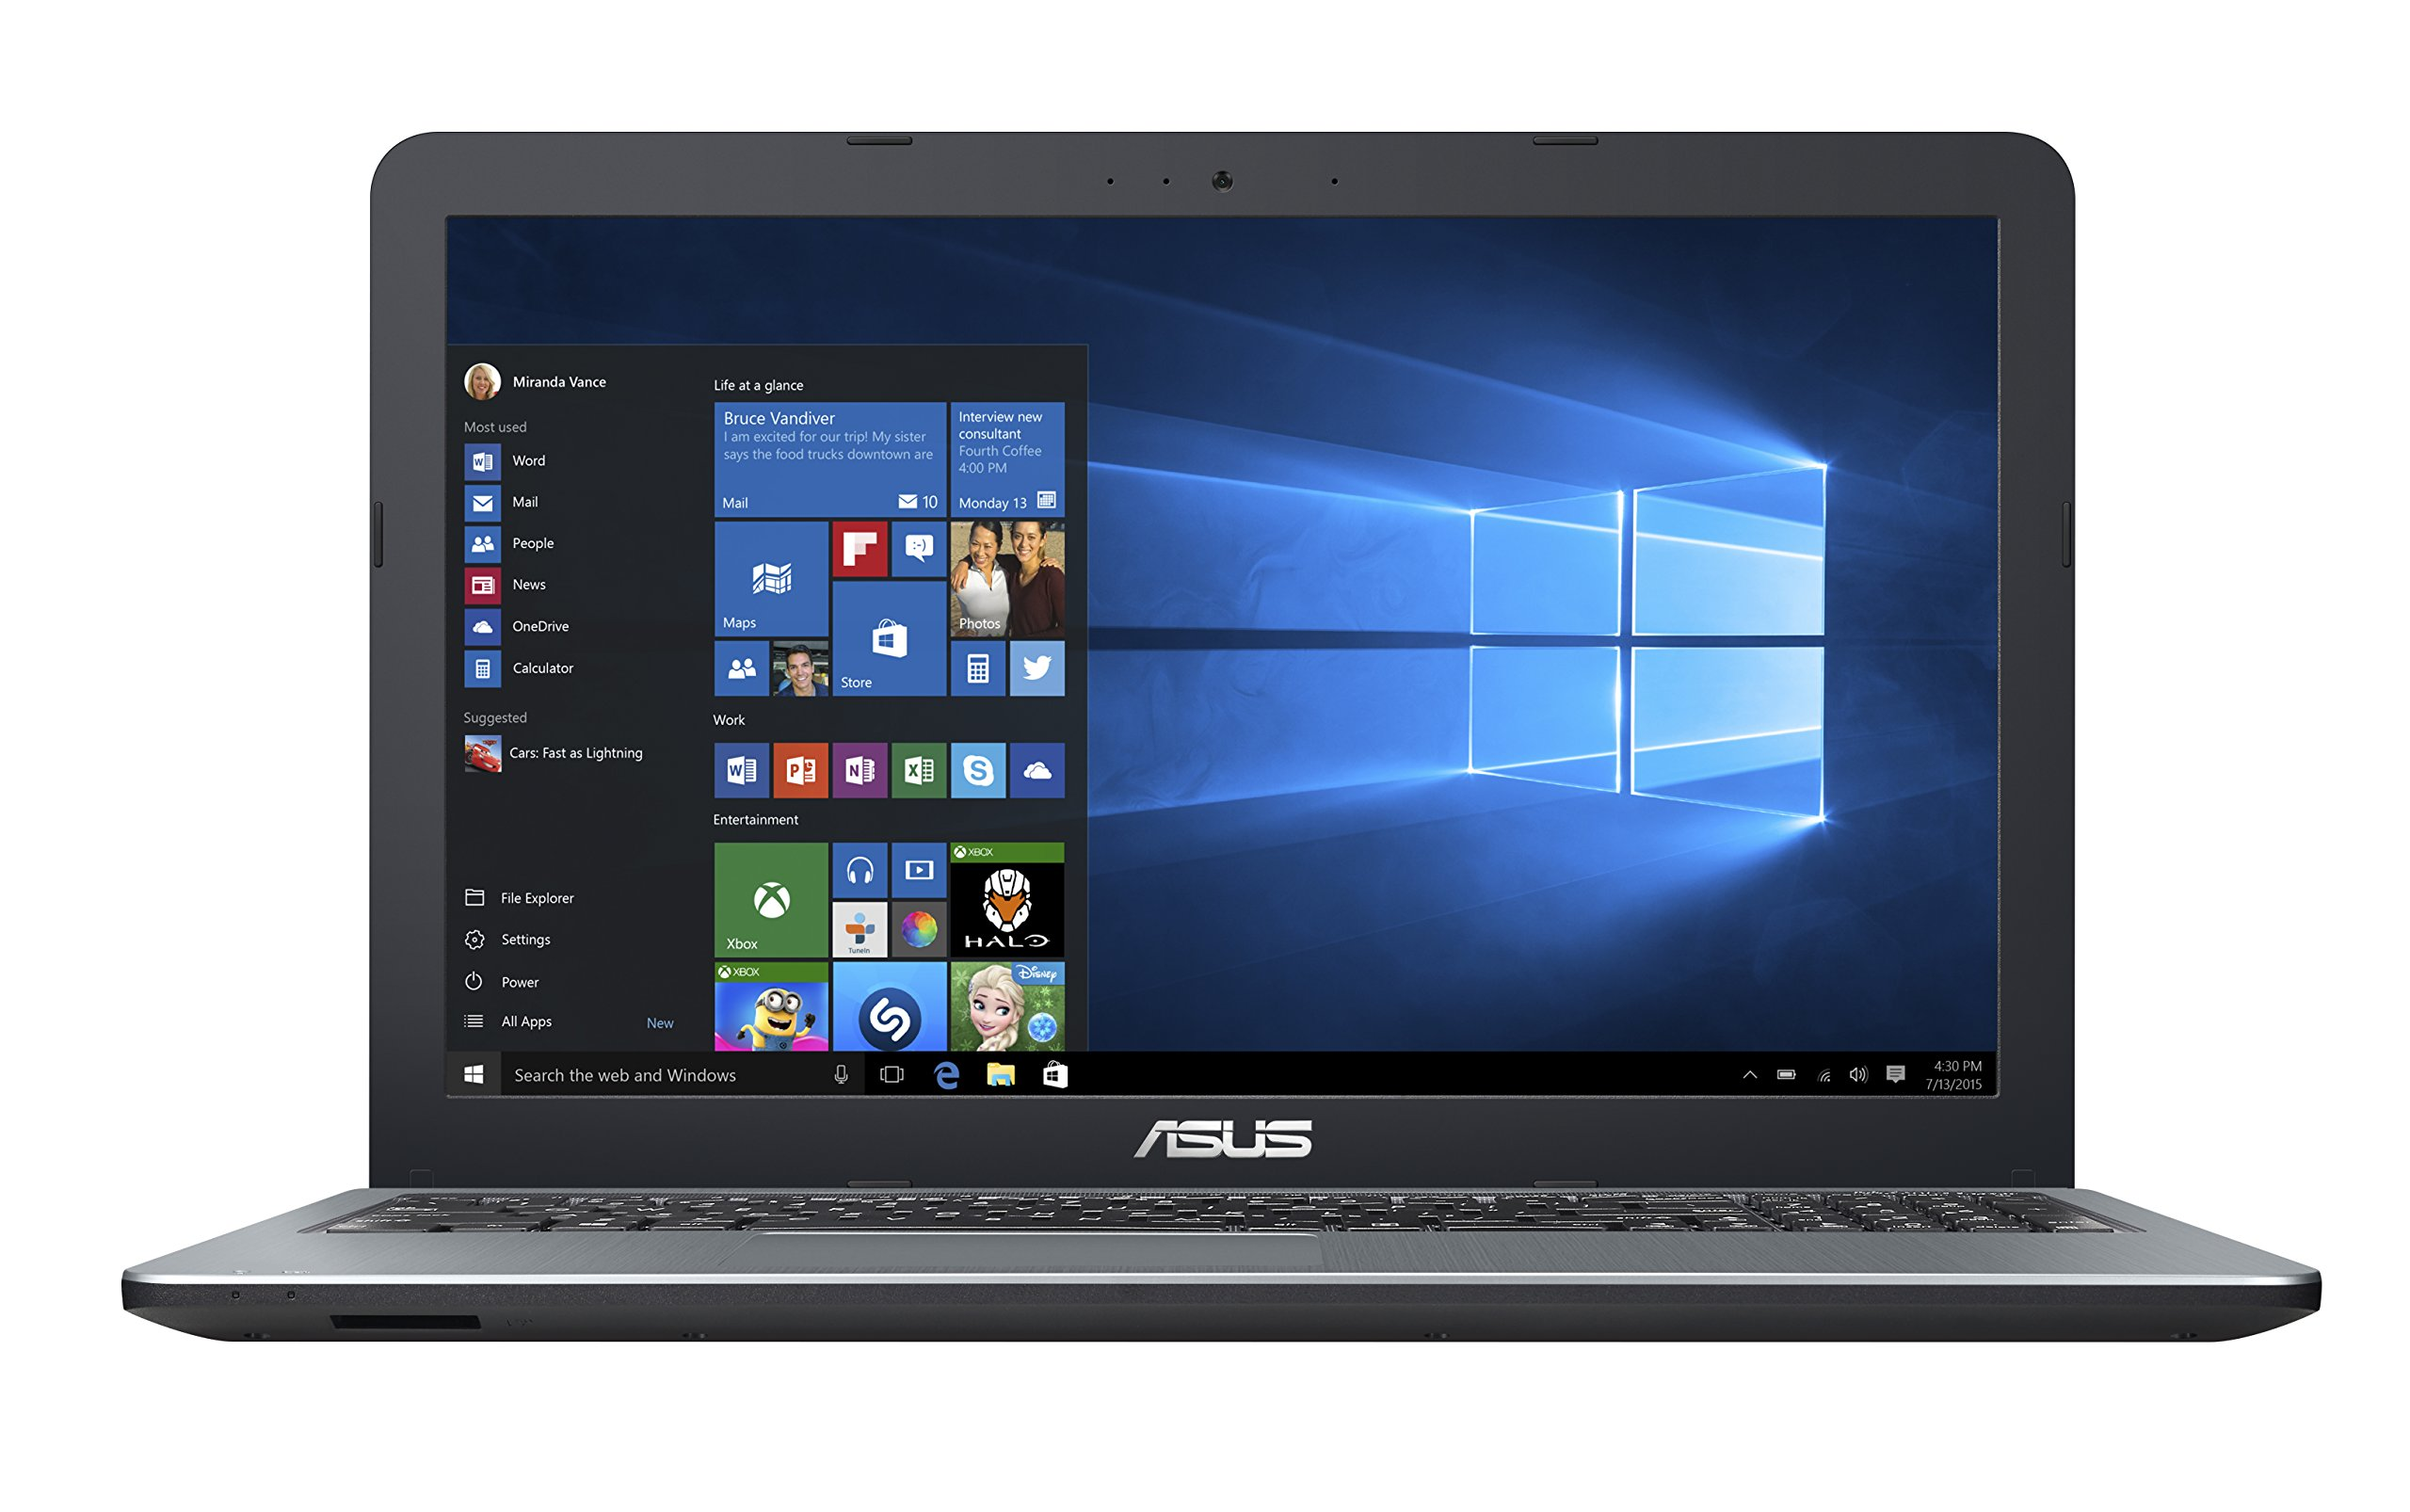 2016 Asus ViviBook 15.6'' High Performance Laptop PC, Intel Pentium N3700, 4GB RAM, 500GB HDD, DVD+/-RW, HDMI, VGA, WIFI, Webcam, Windows 10